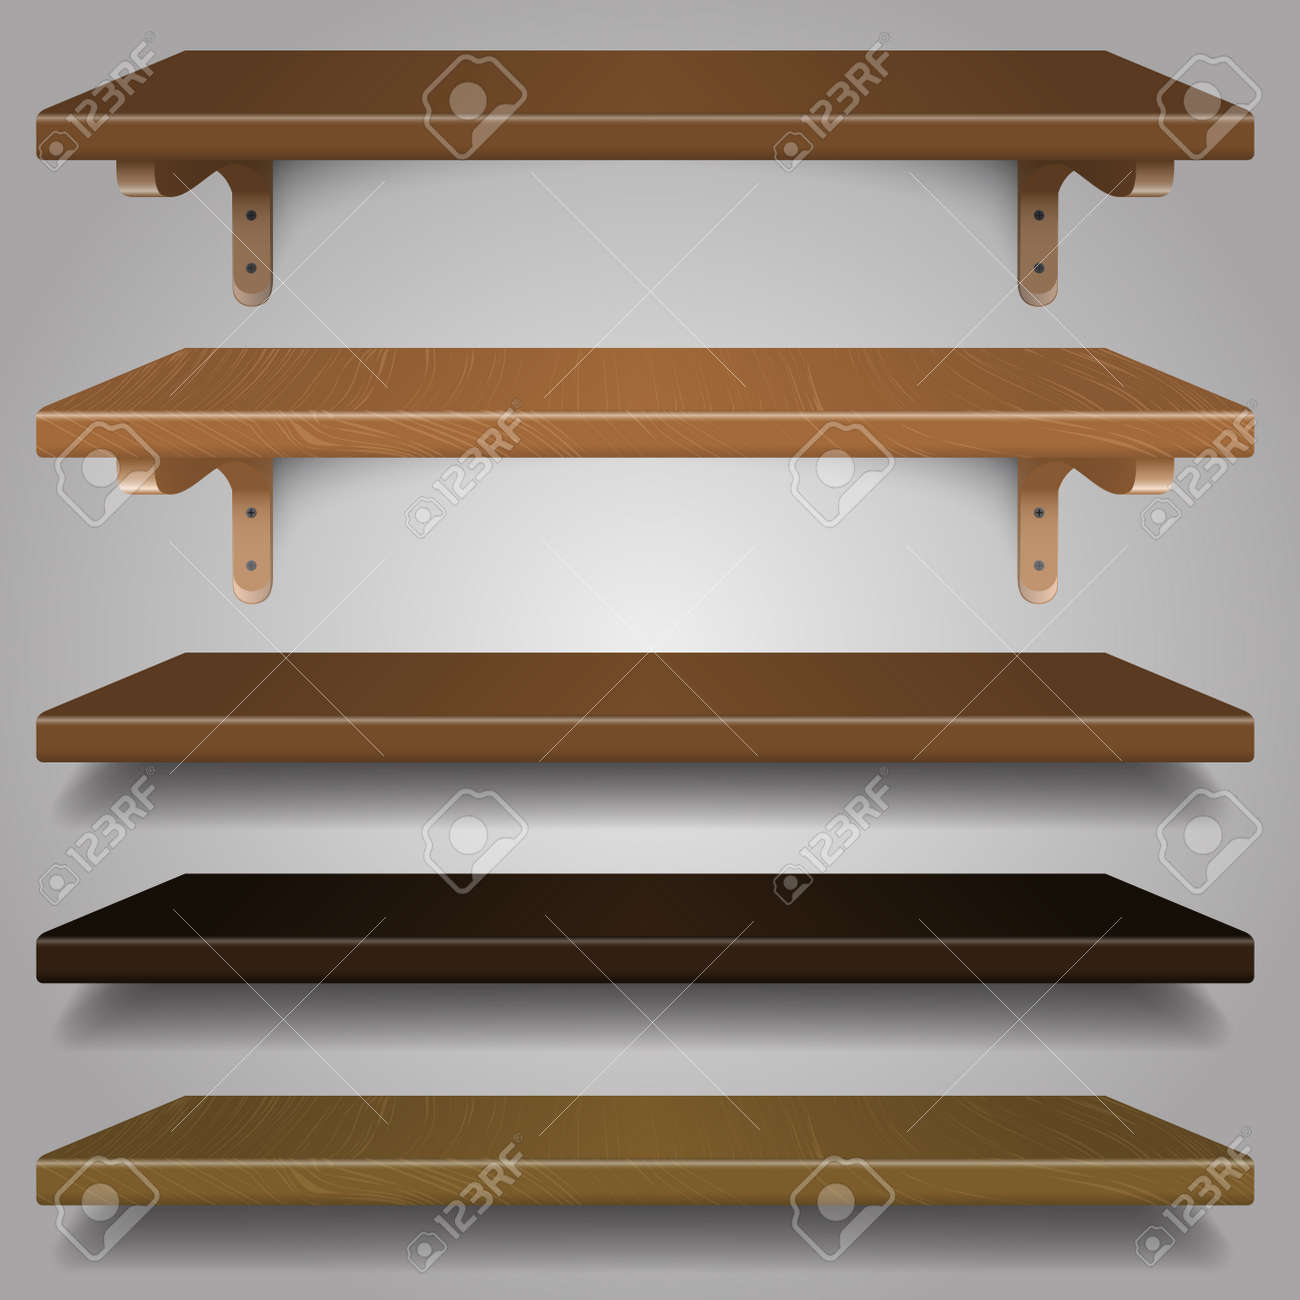 Wood Shelves Different Types And Colors Royalty Free Cliparts Vectors And Stock Illustration Image 23646920